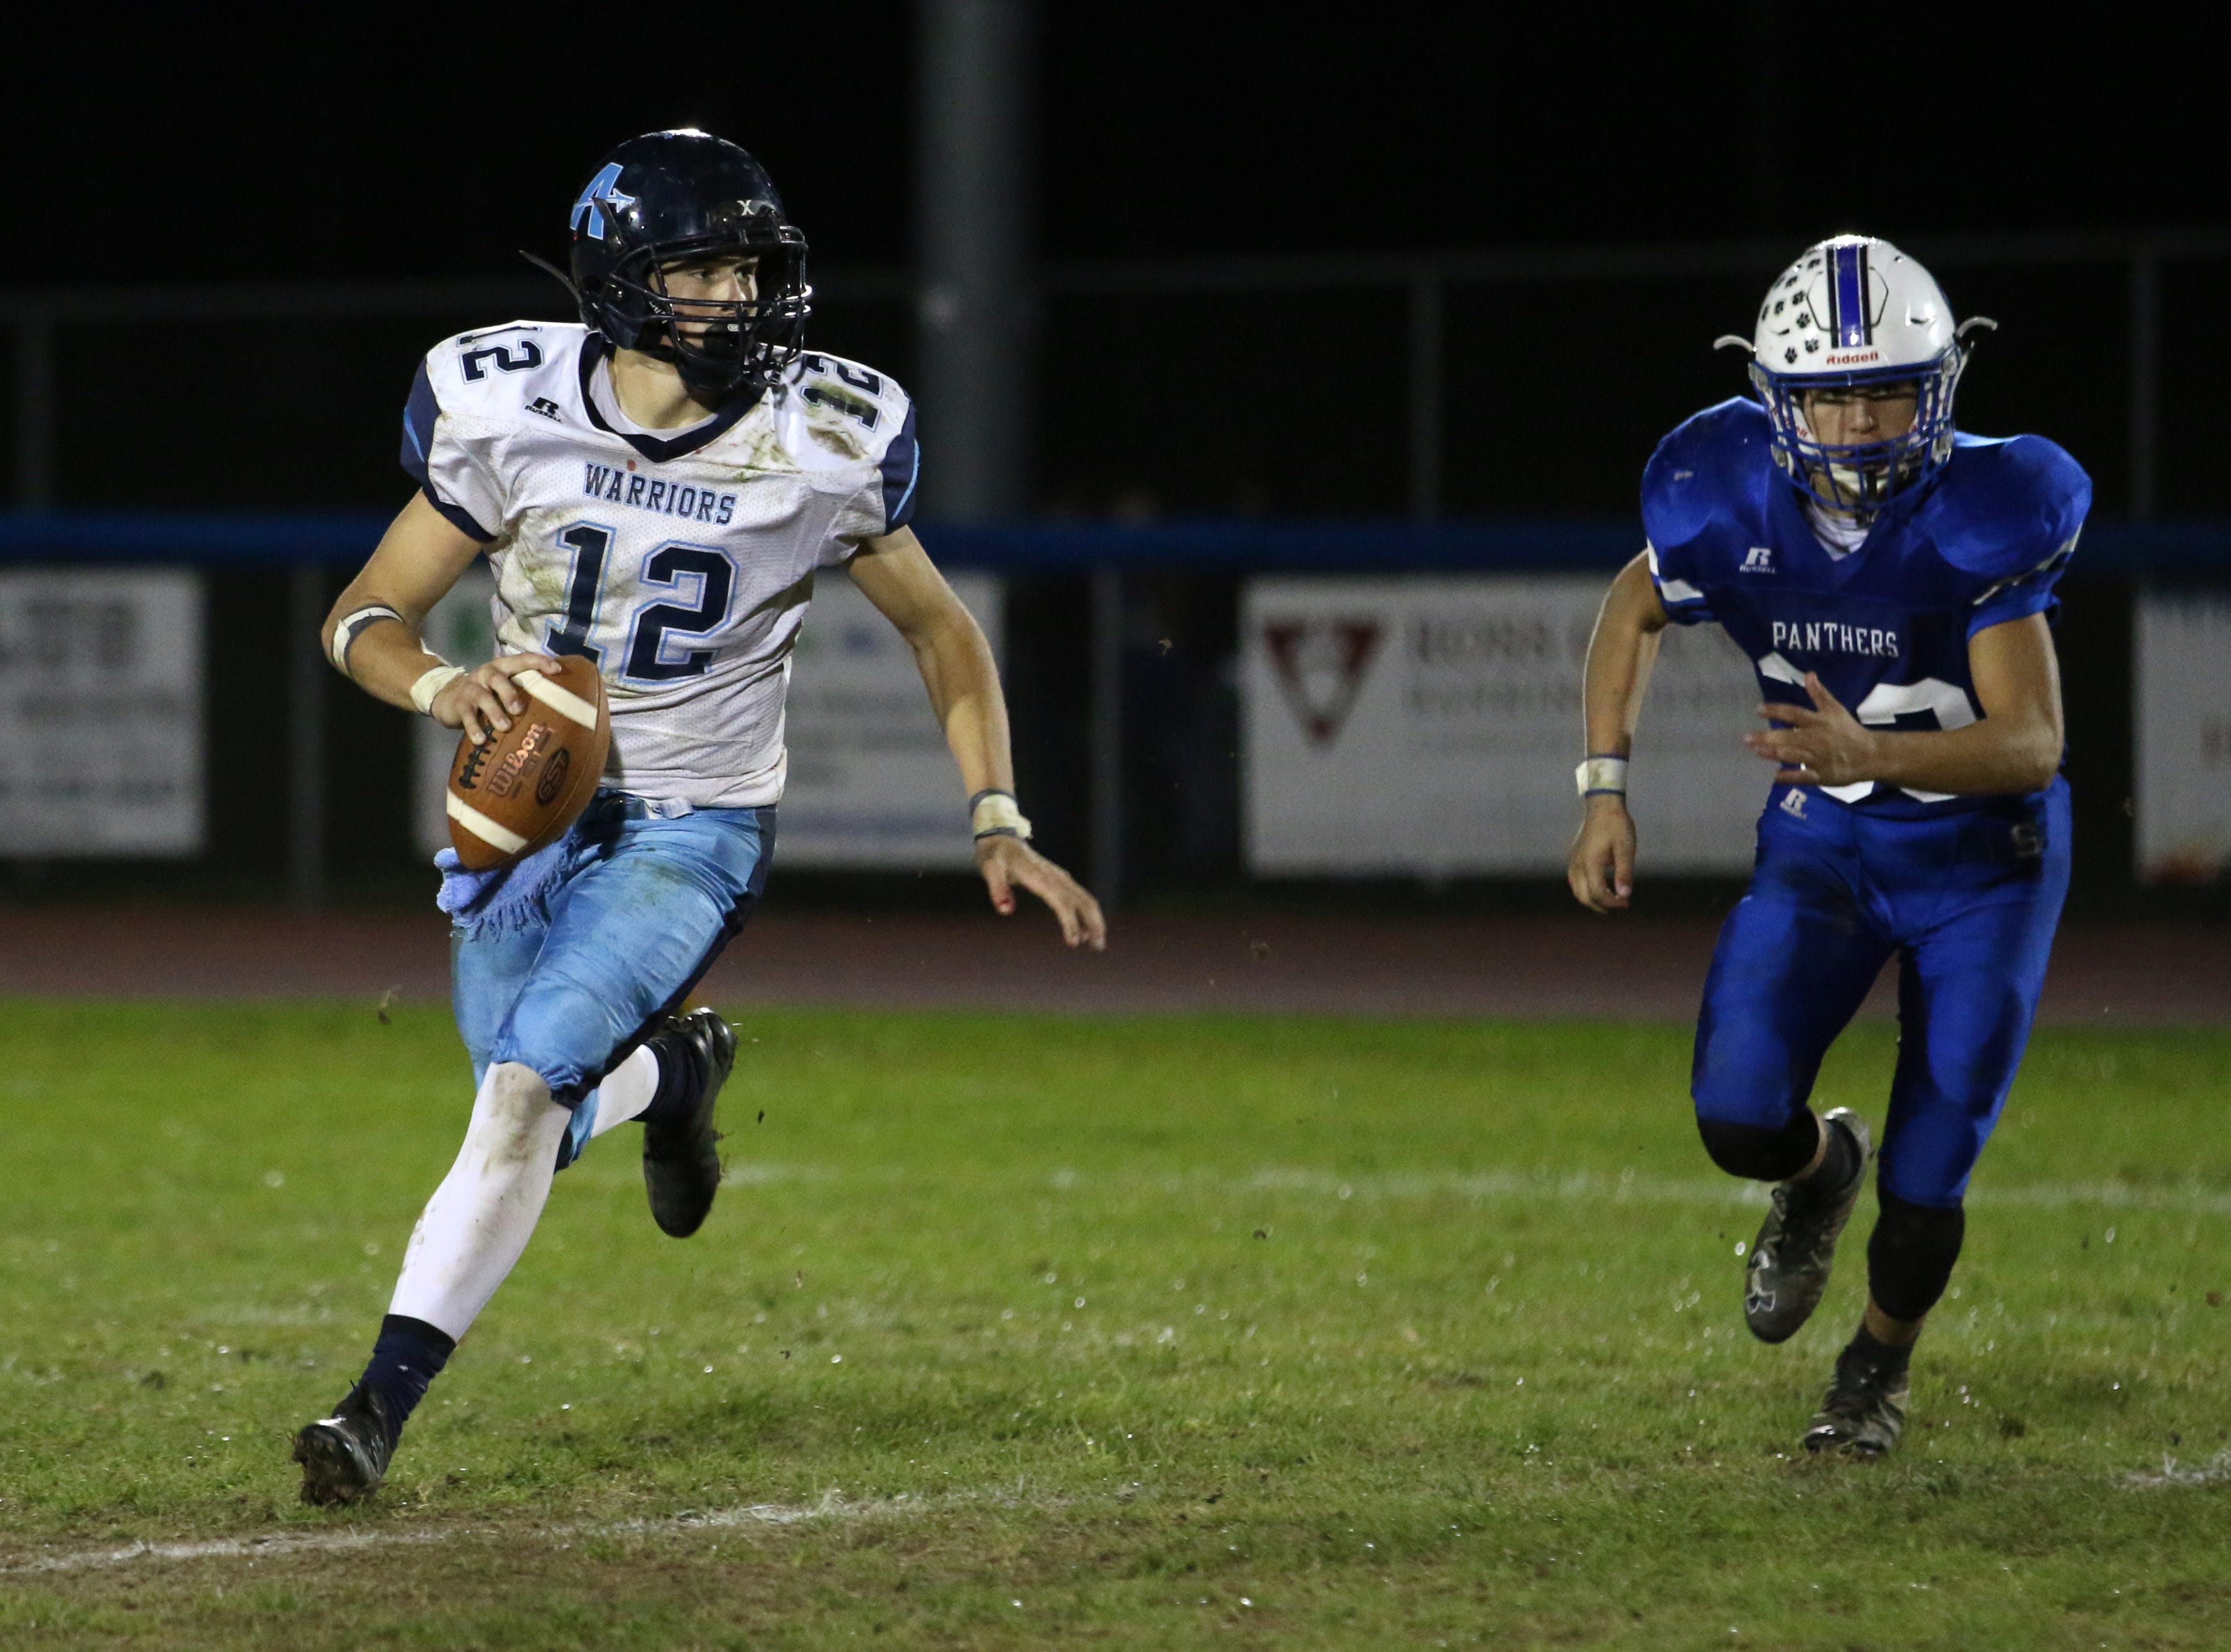 Adena QB, Preston Sykes scrambles while looking downfield for an open receiver Friday night at Southeastern High School.  Adena defeated Southeastern 33-30.